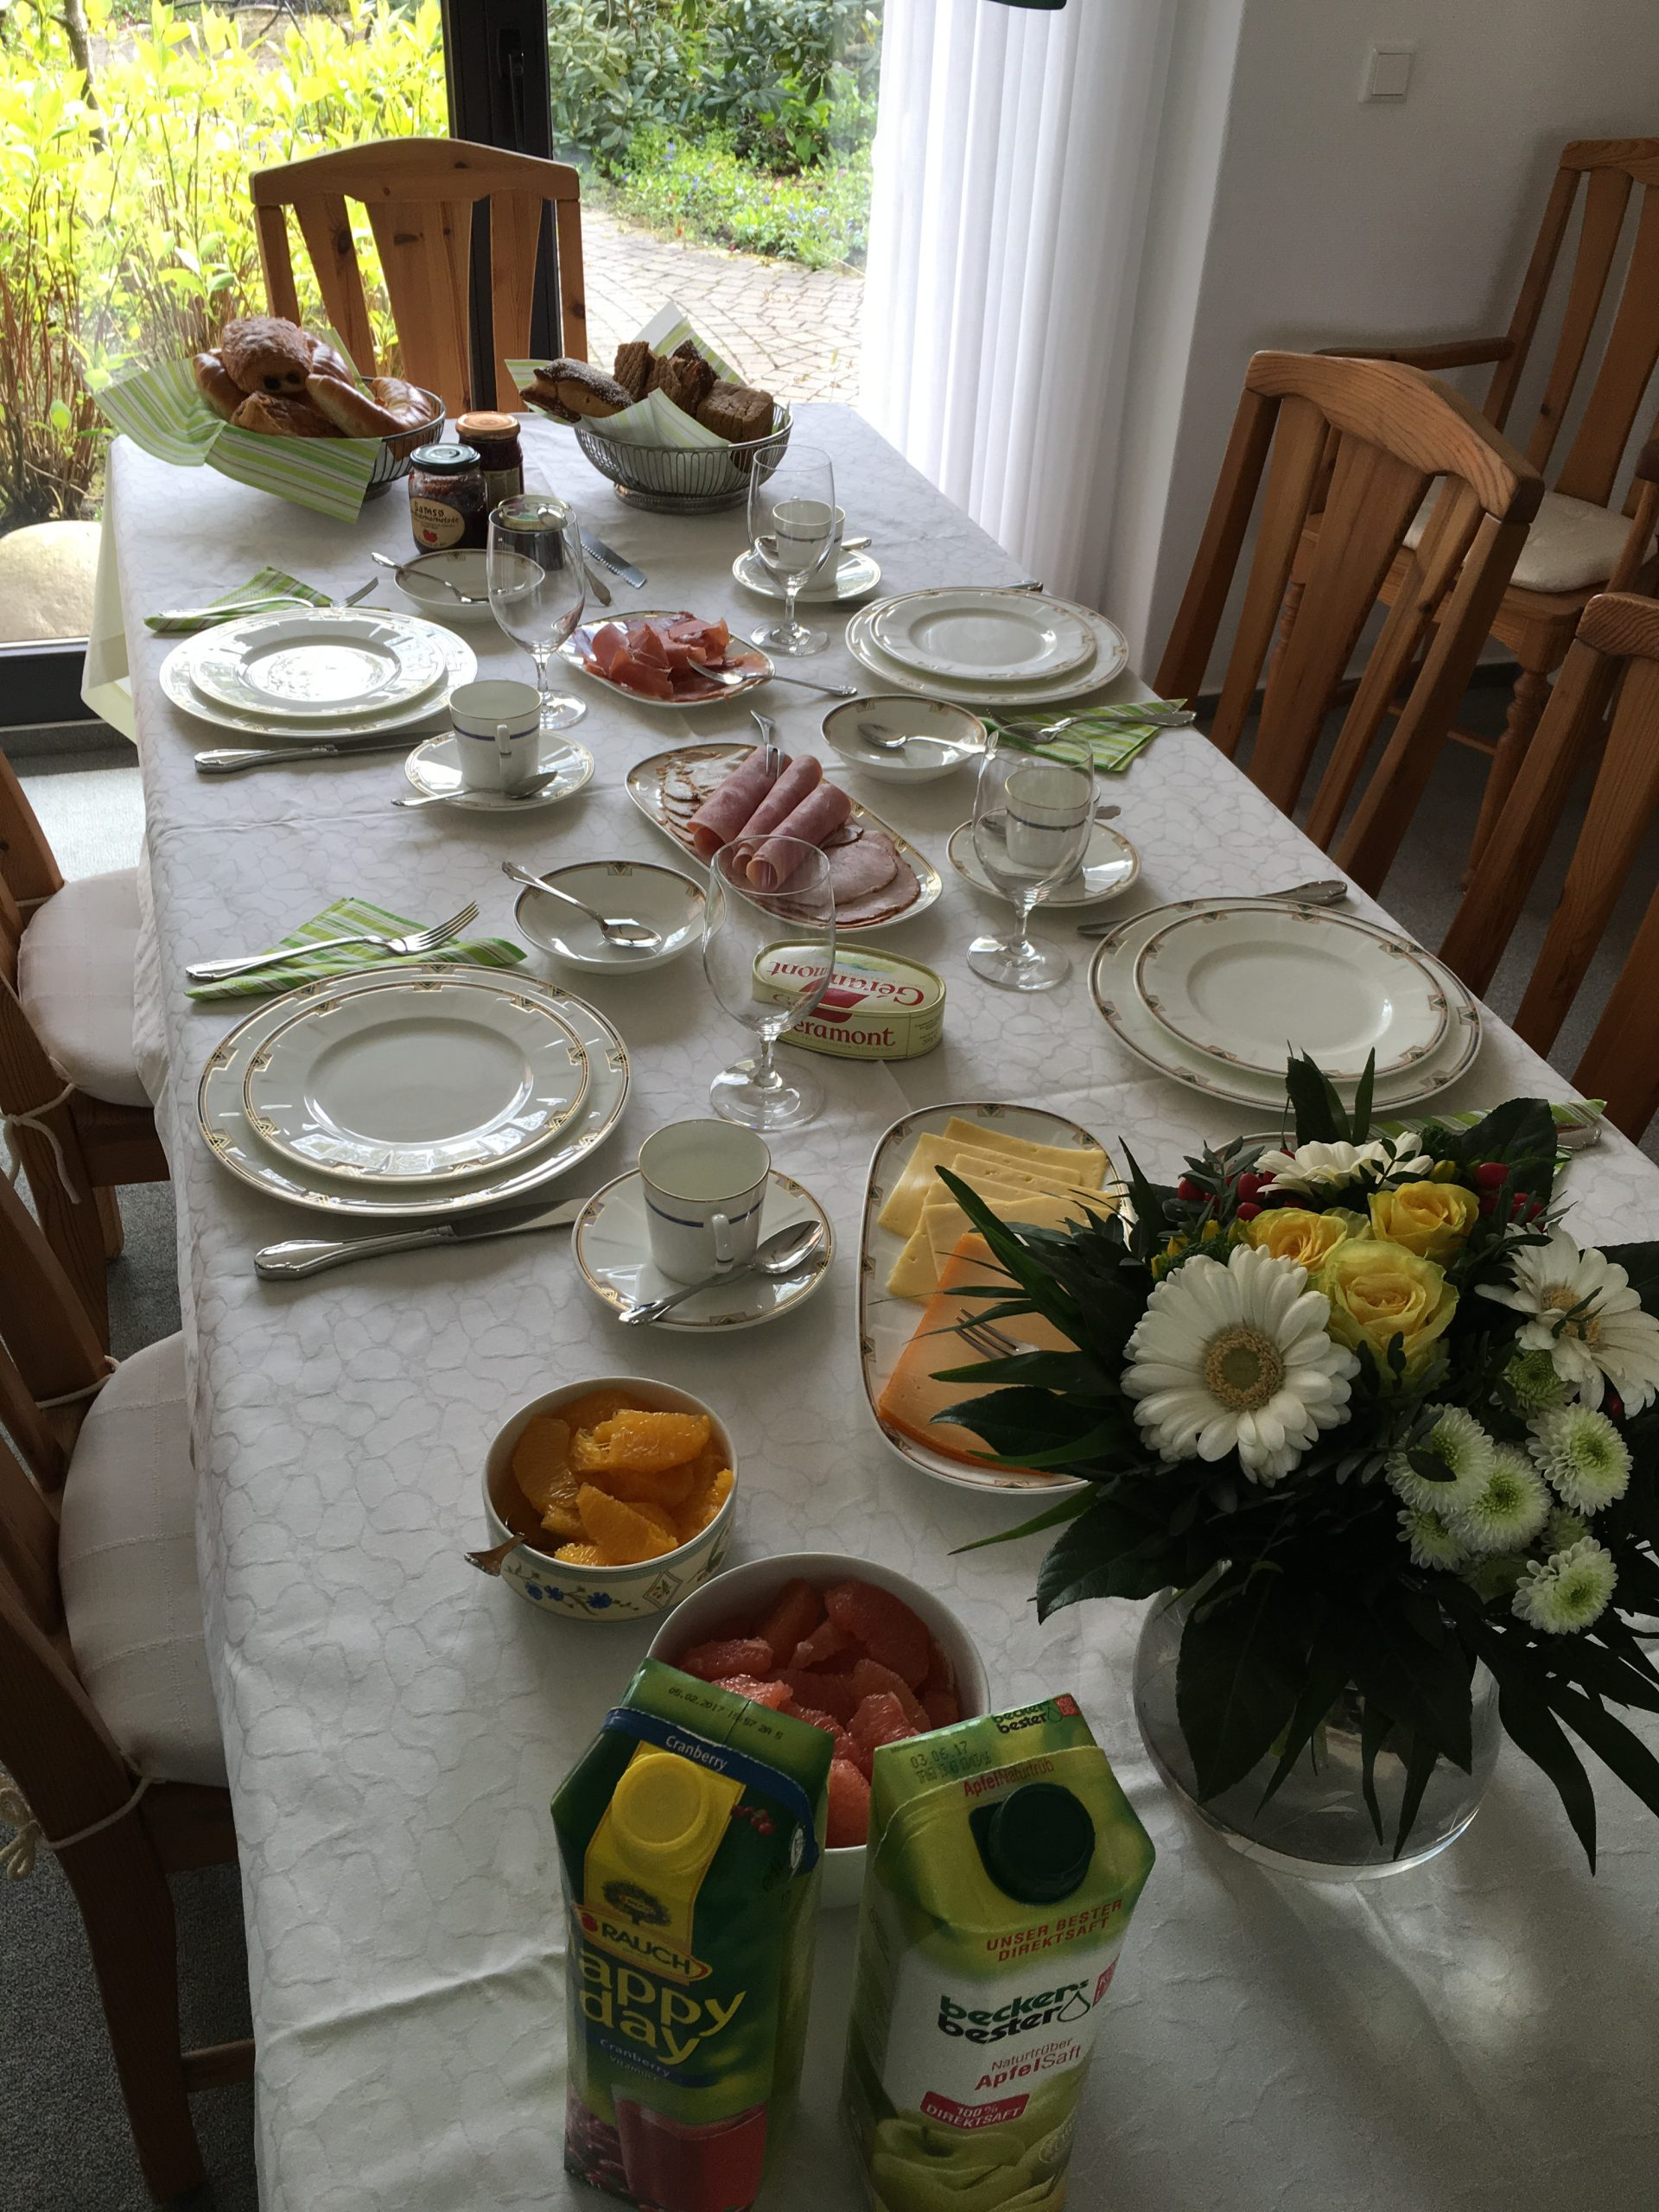 a very formal breakfast table with meats, cheeses and breads